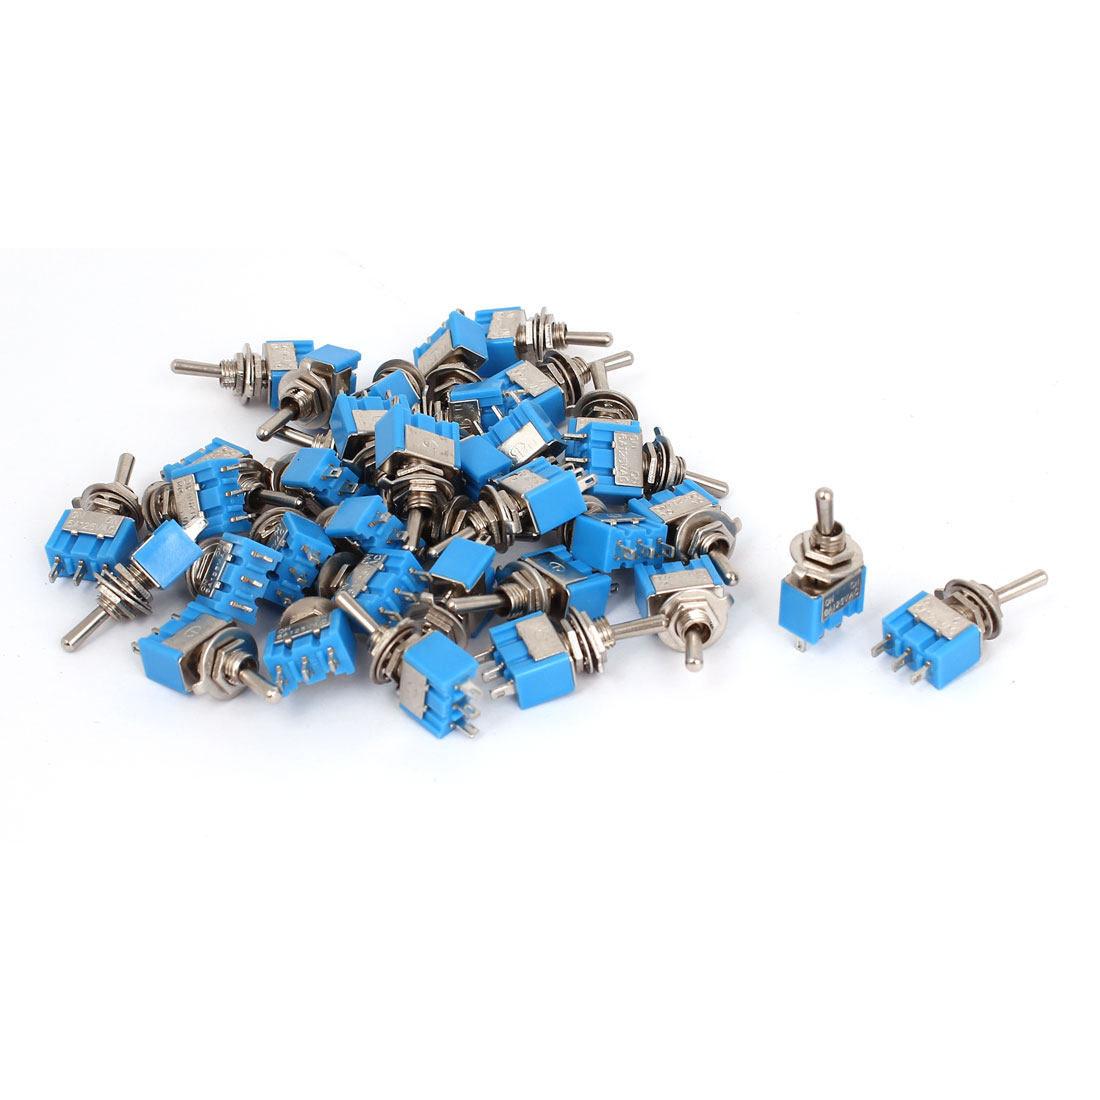 AC 125V 6A SPDT ON/ON 6mm Thread 3 Terminals Toggle Switch Blue 36pcs